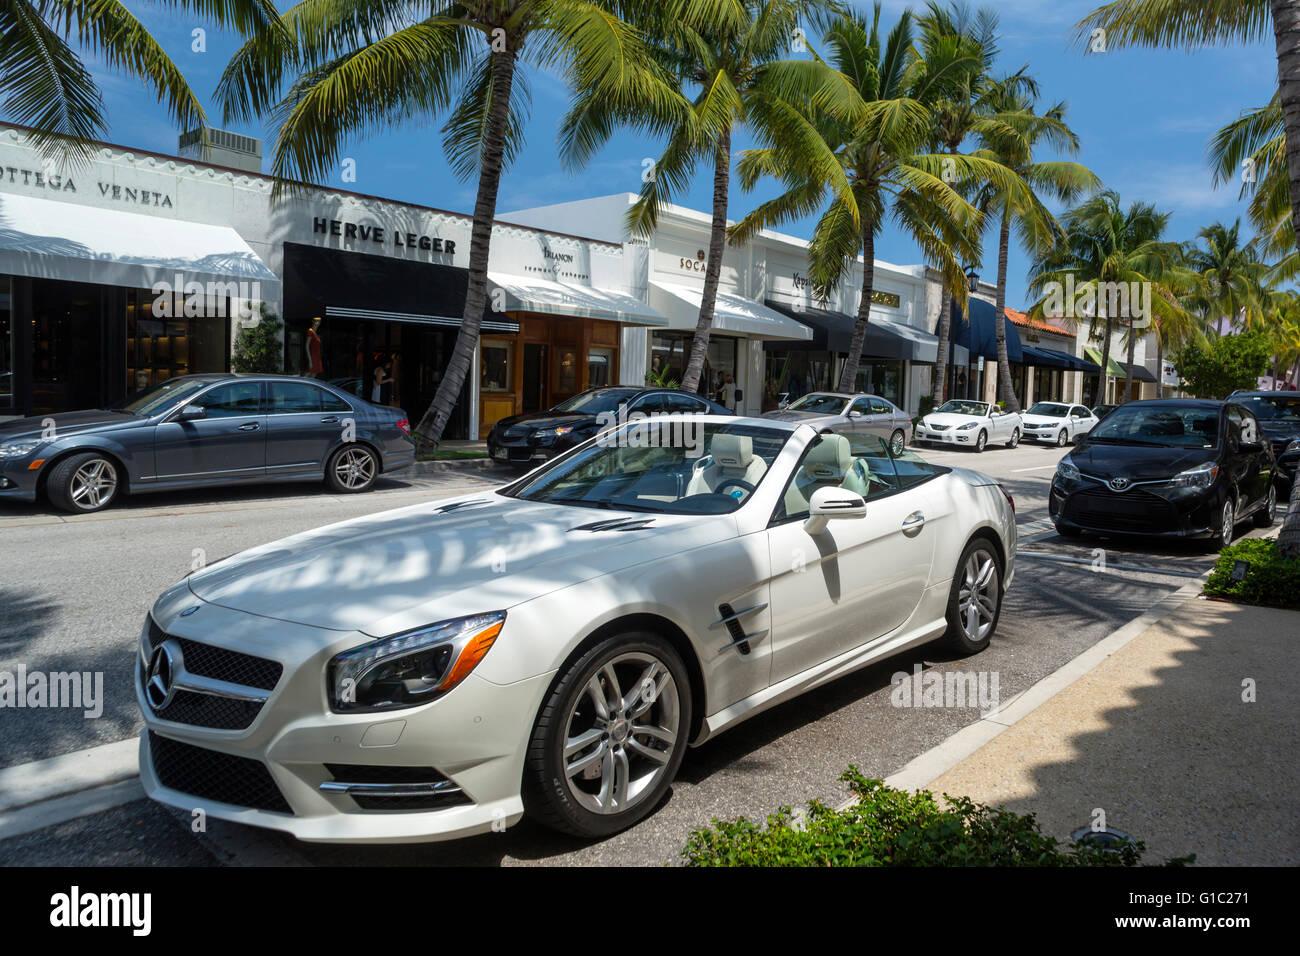 mercedes benz roadster convertible worth avenue palm beach